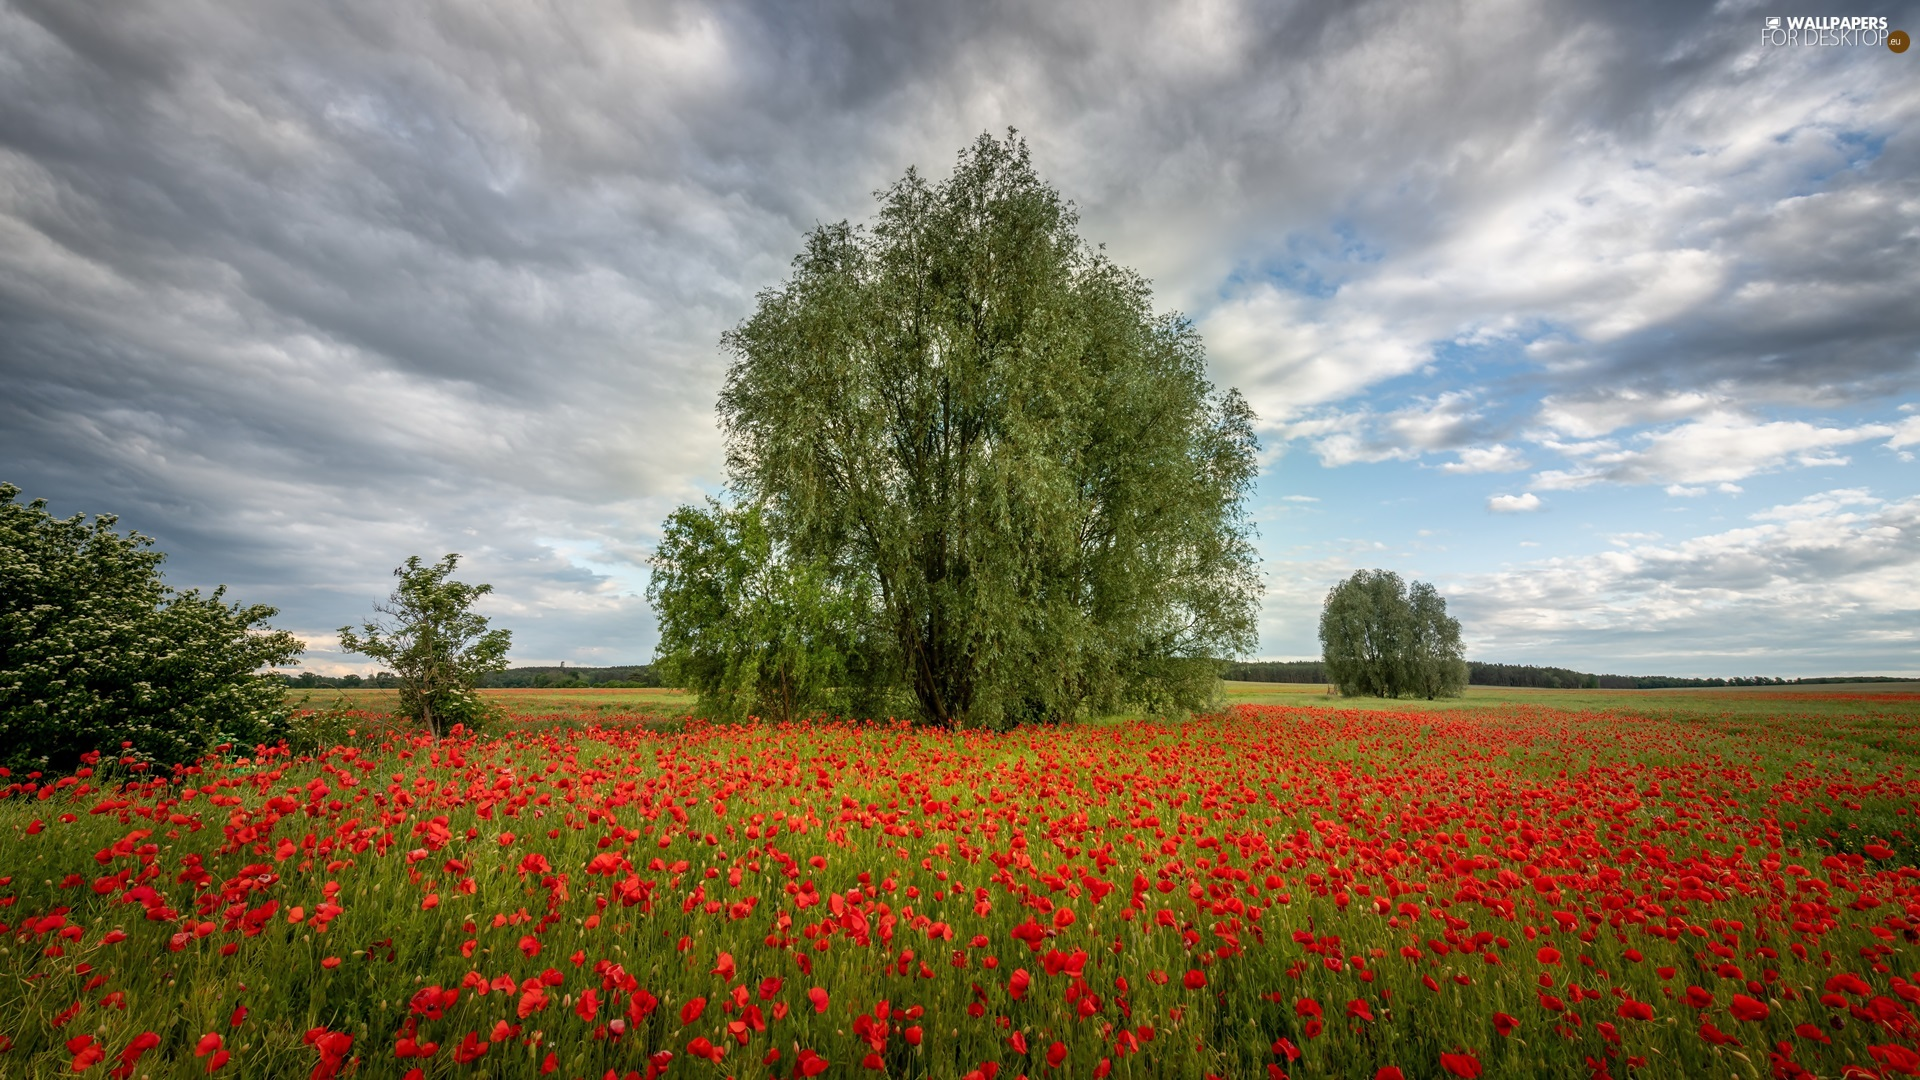 trees, Meadow, Bush, clouds, viewes, papavers